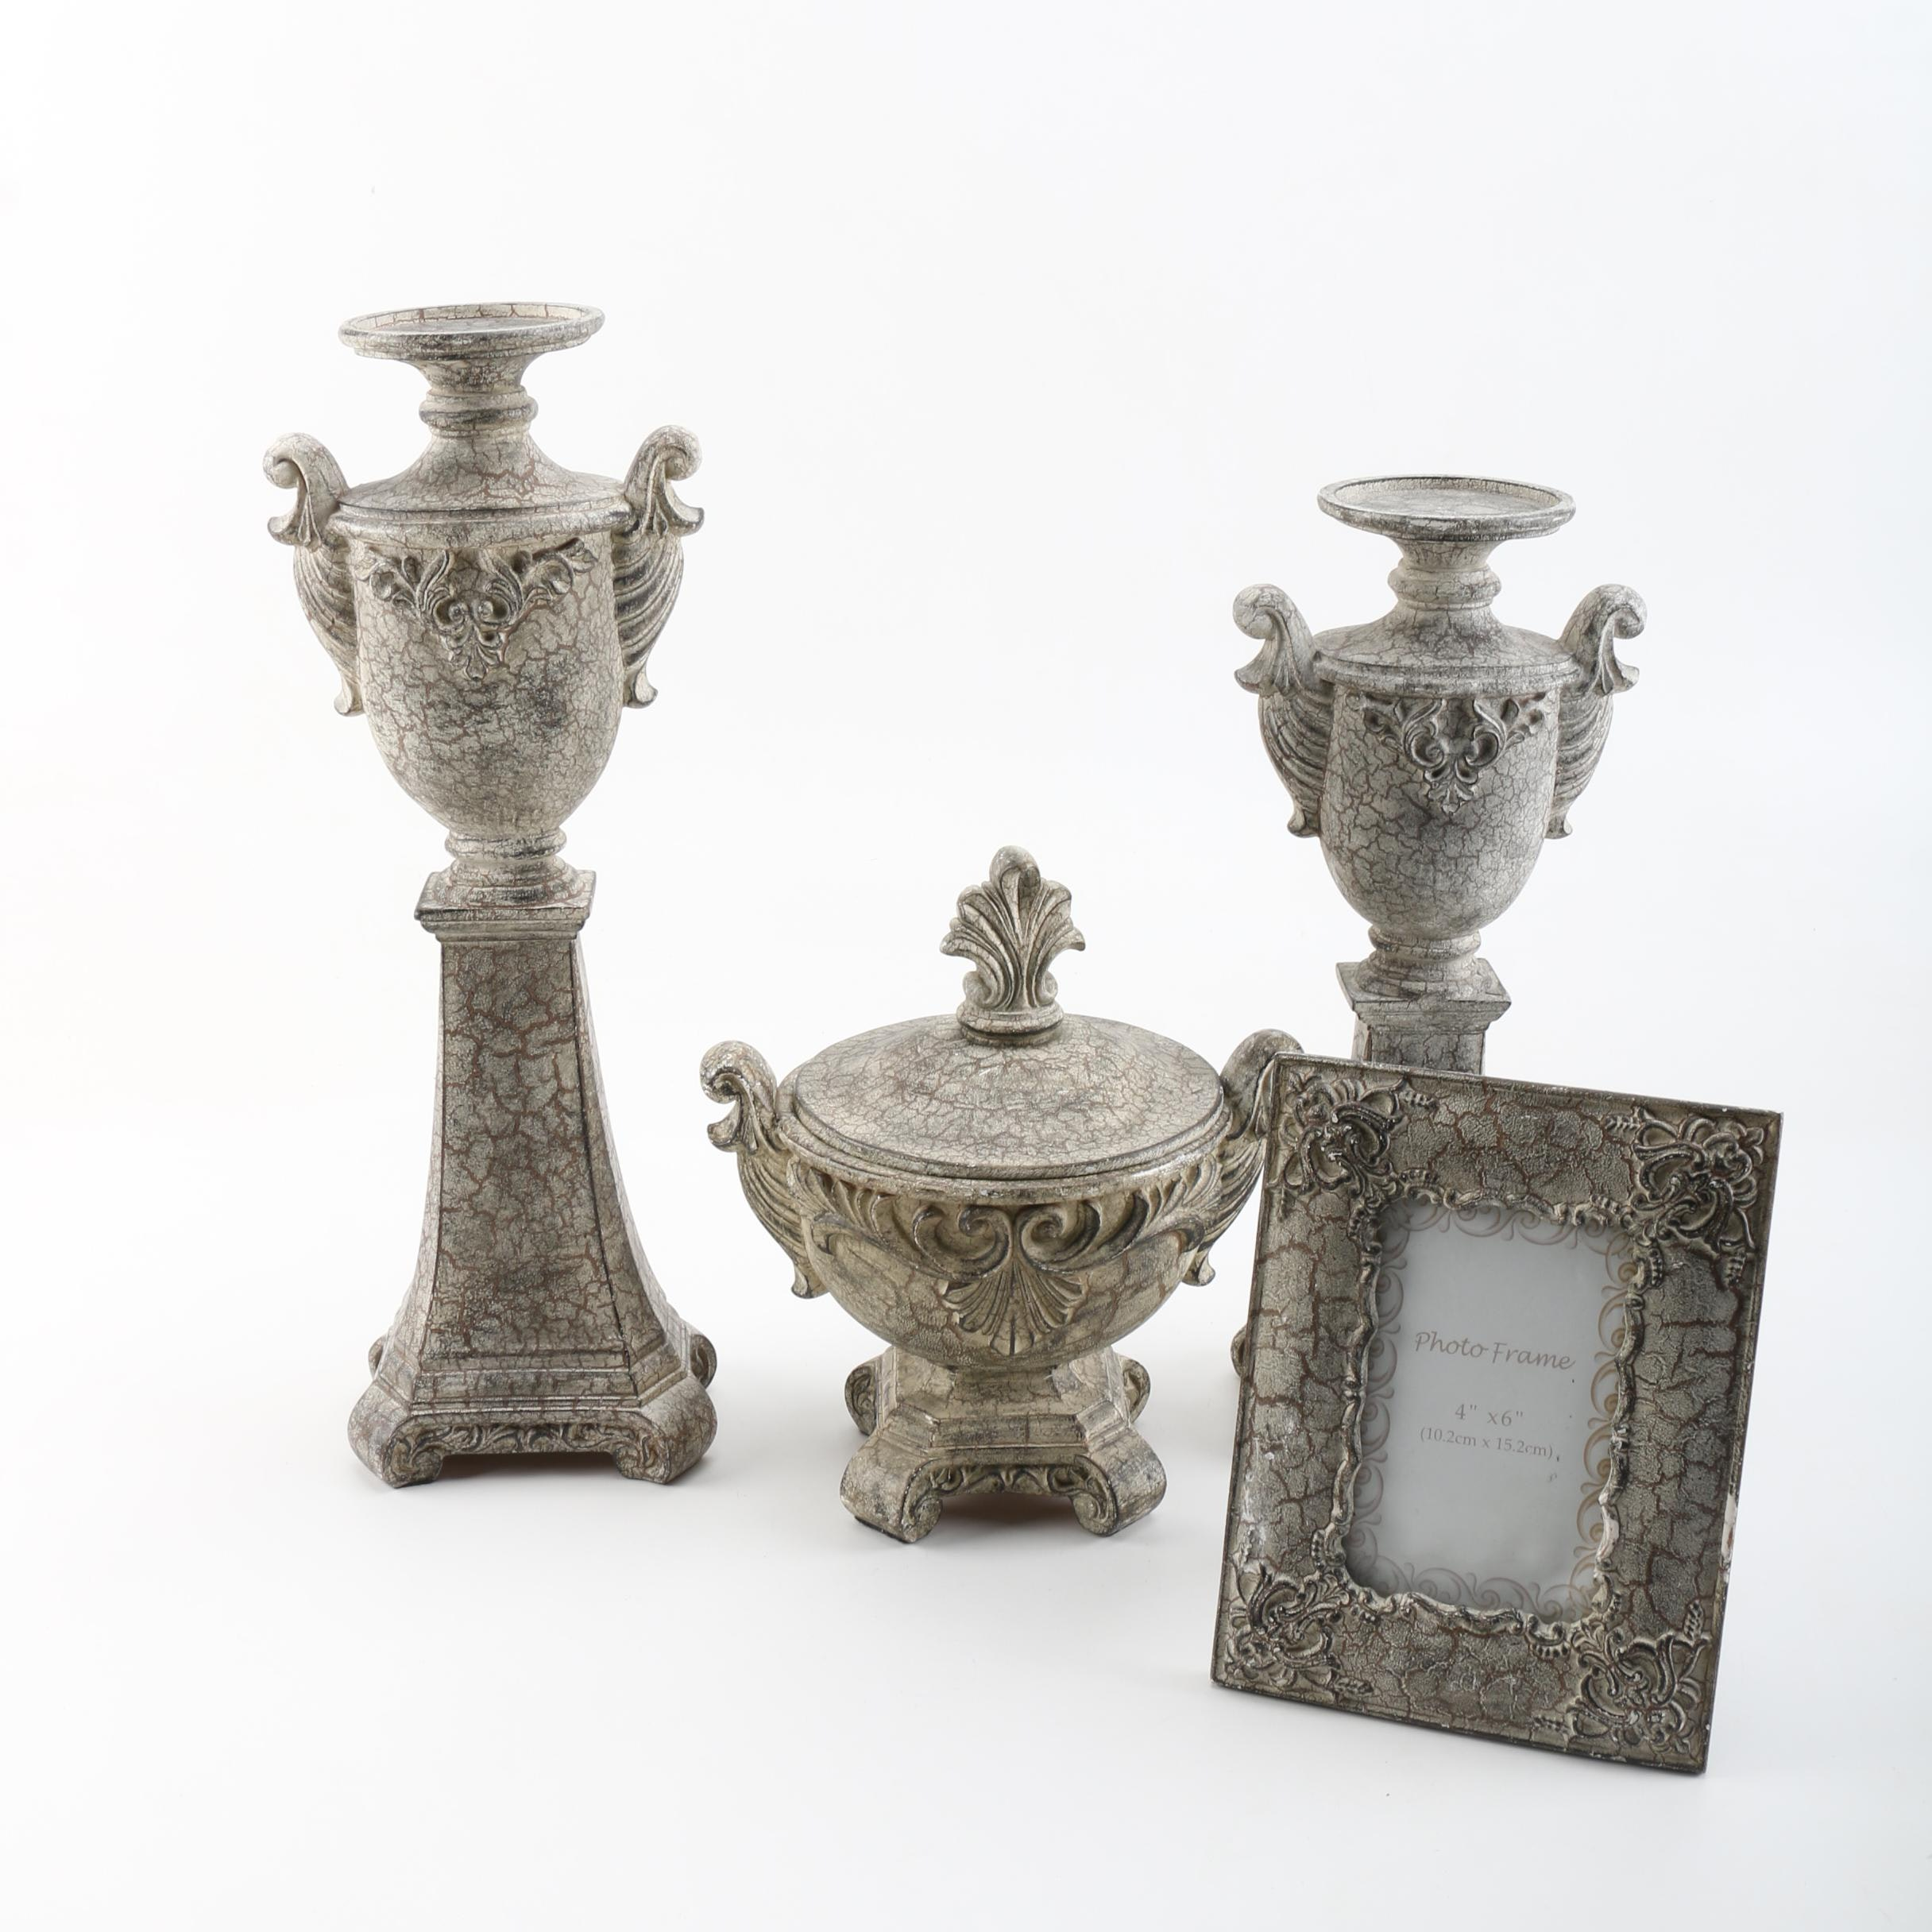 Resin Candle Holders and Matching Decor